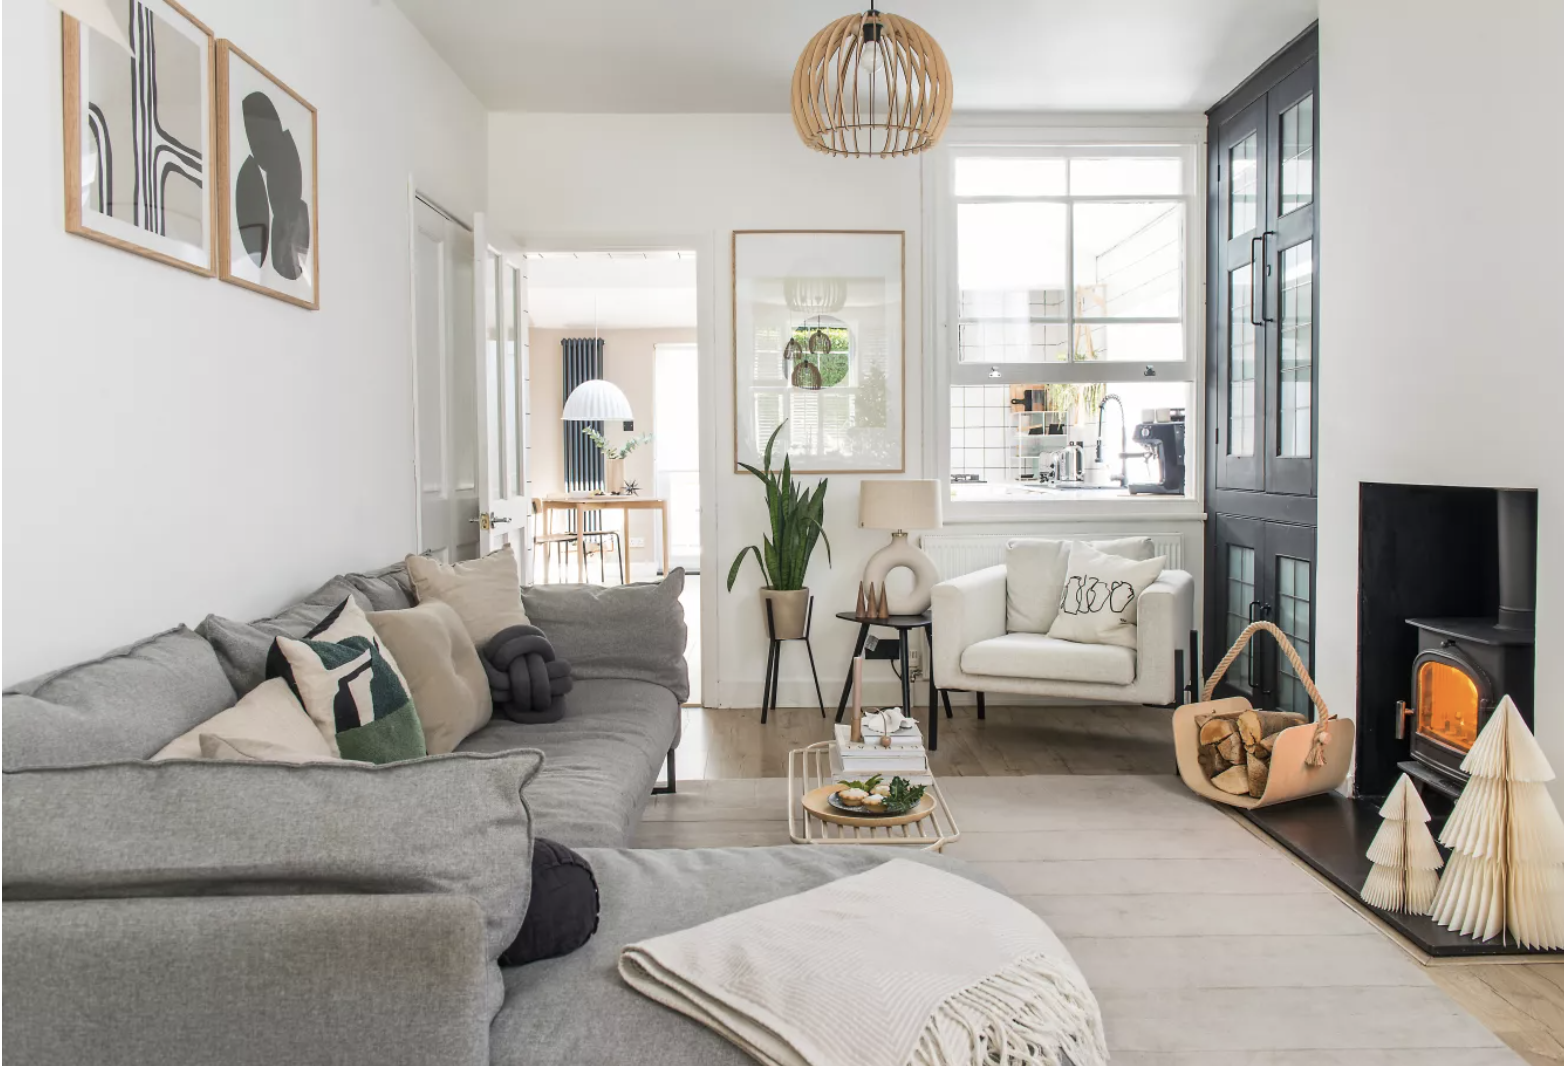 7 Best Design Options When Decorating Your Living Room